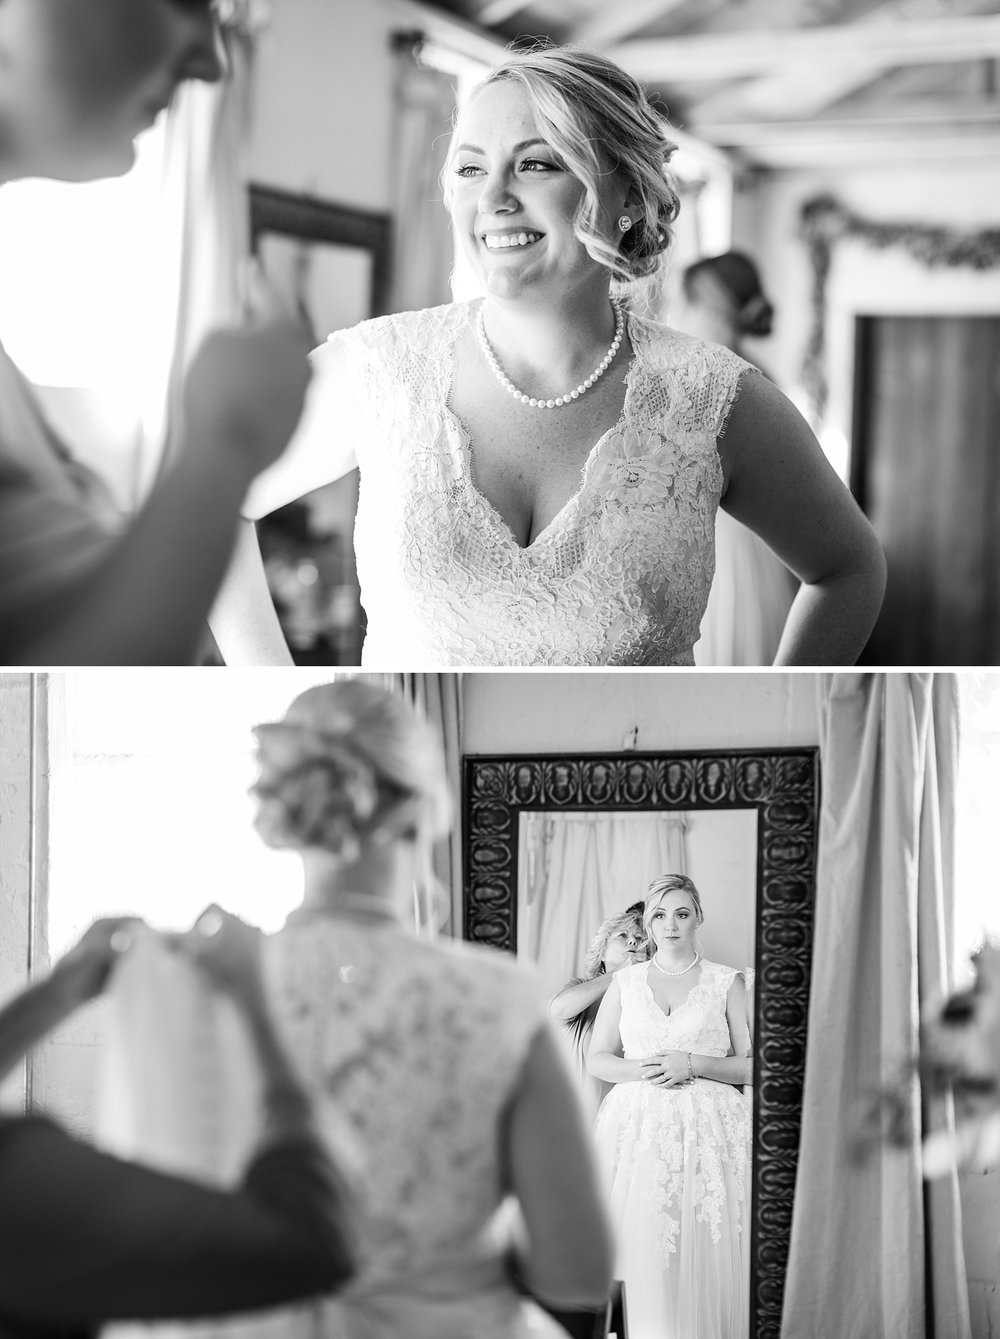 bride-getting-dressed-wedding.jpg